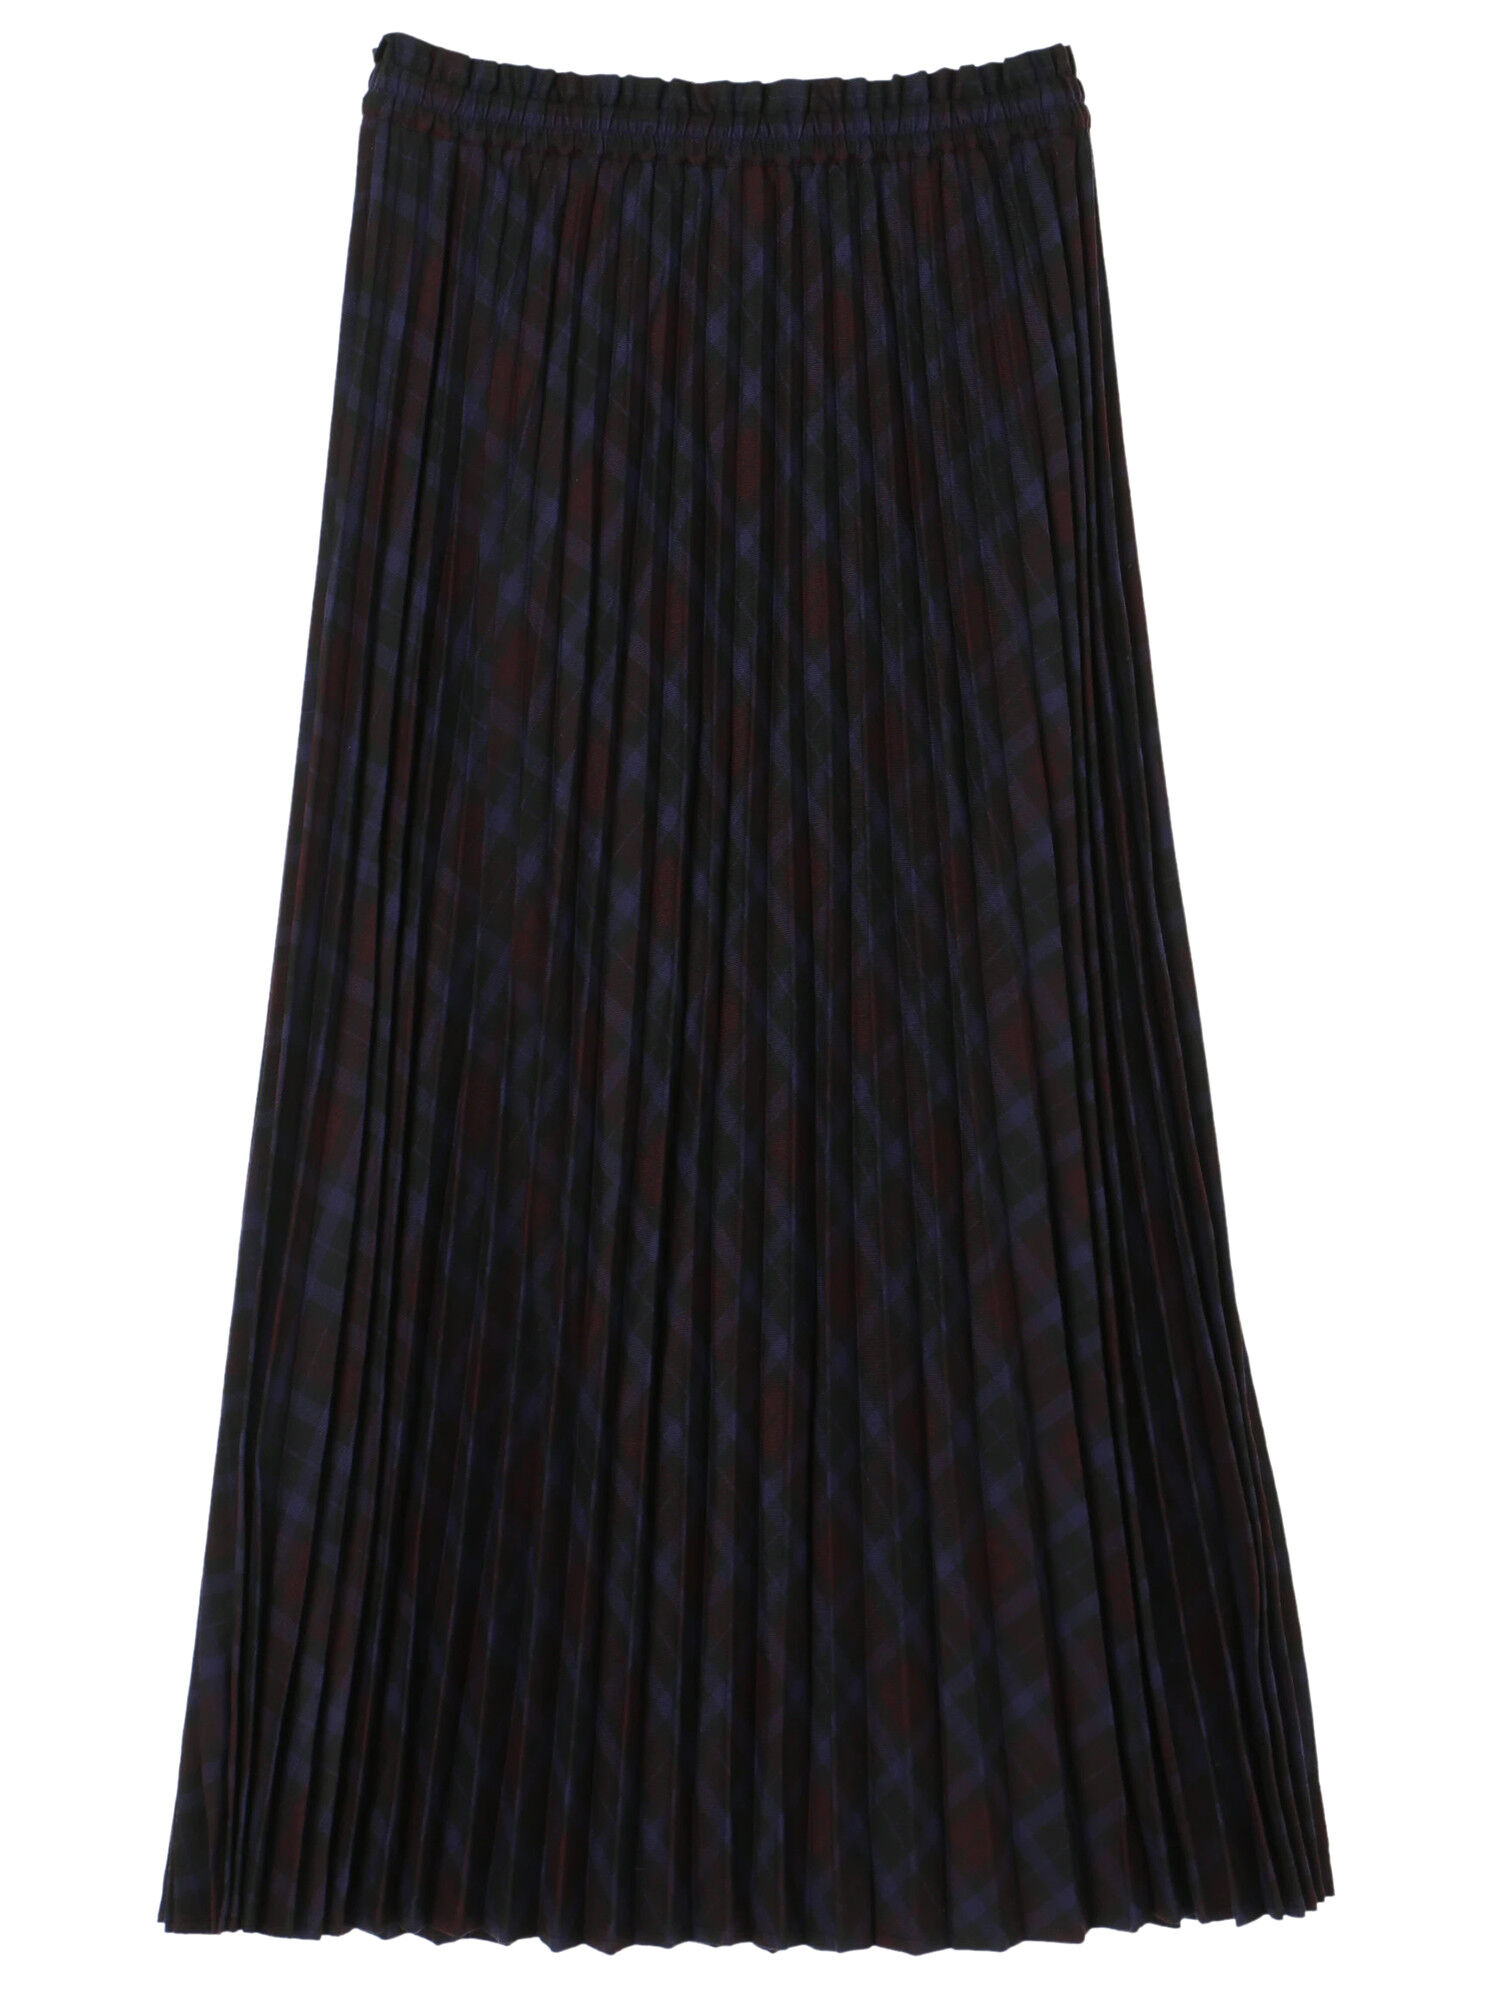 Earth, Music & Ecology Aysen Pleated Skirt - Check Navy